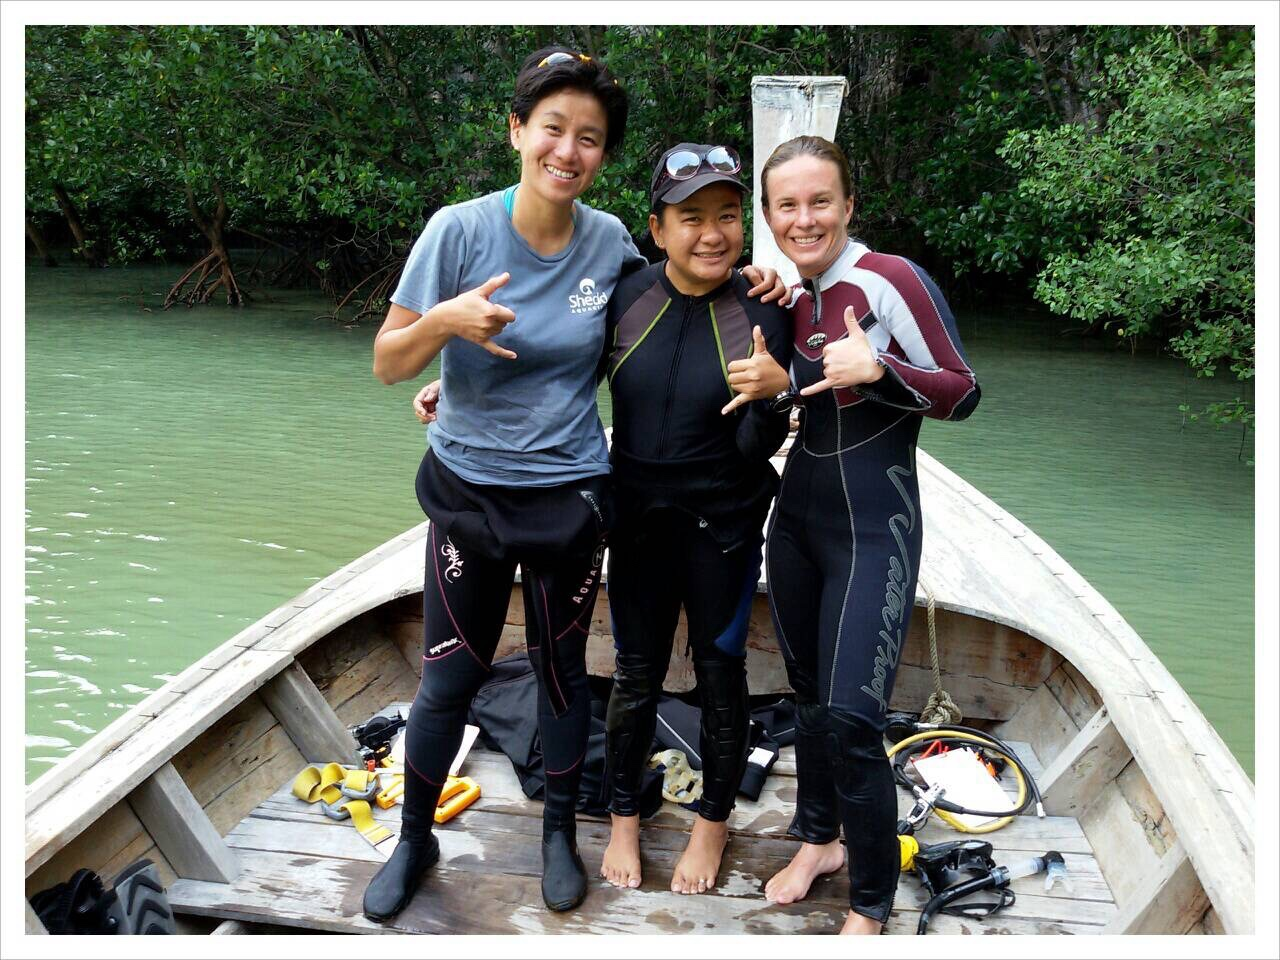 No research is complete without a research team. Here are Dr. Tse-Lynn Loh, assistant Top, and myself in between dives. We worked together to search for seahorses underwater in Thailand and also created the facebook page iSeahorse Thailand, which encourages divers to share seahorse sightings online. Dr. Loh loves durian, Top is a vegetarian, and my favorite Thai meal is breakfast : )